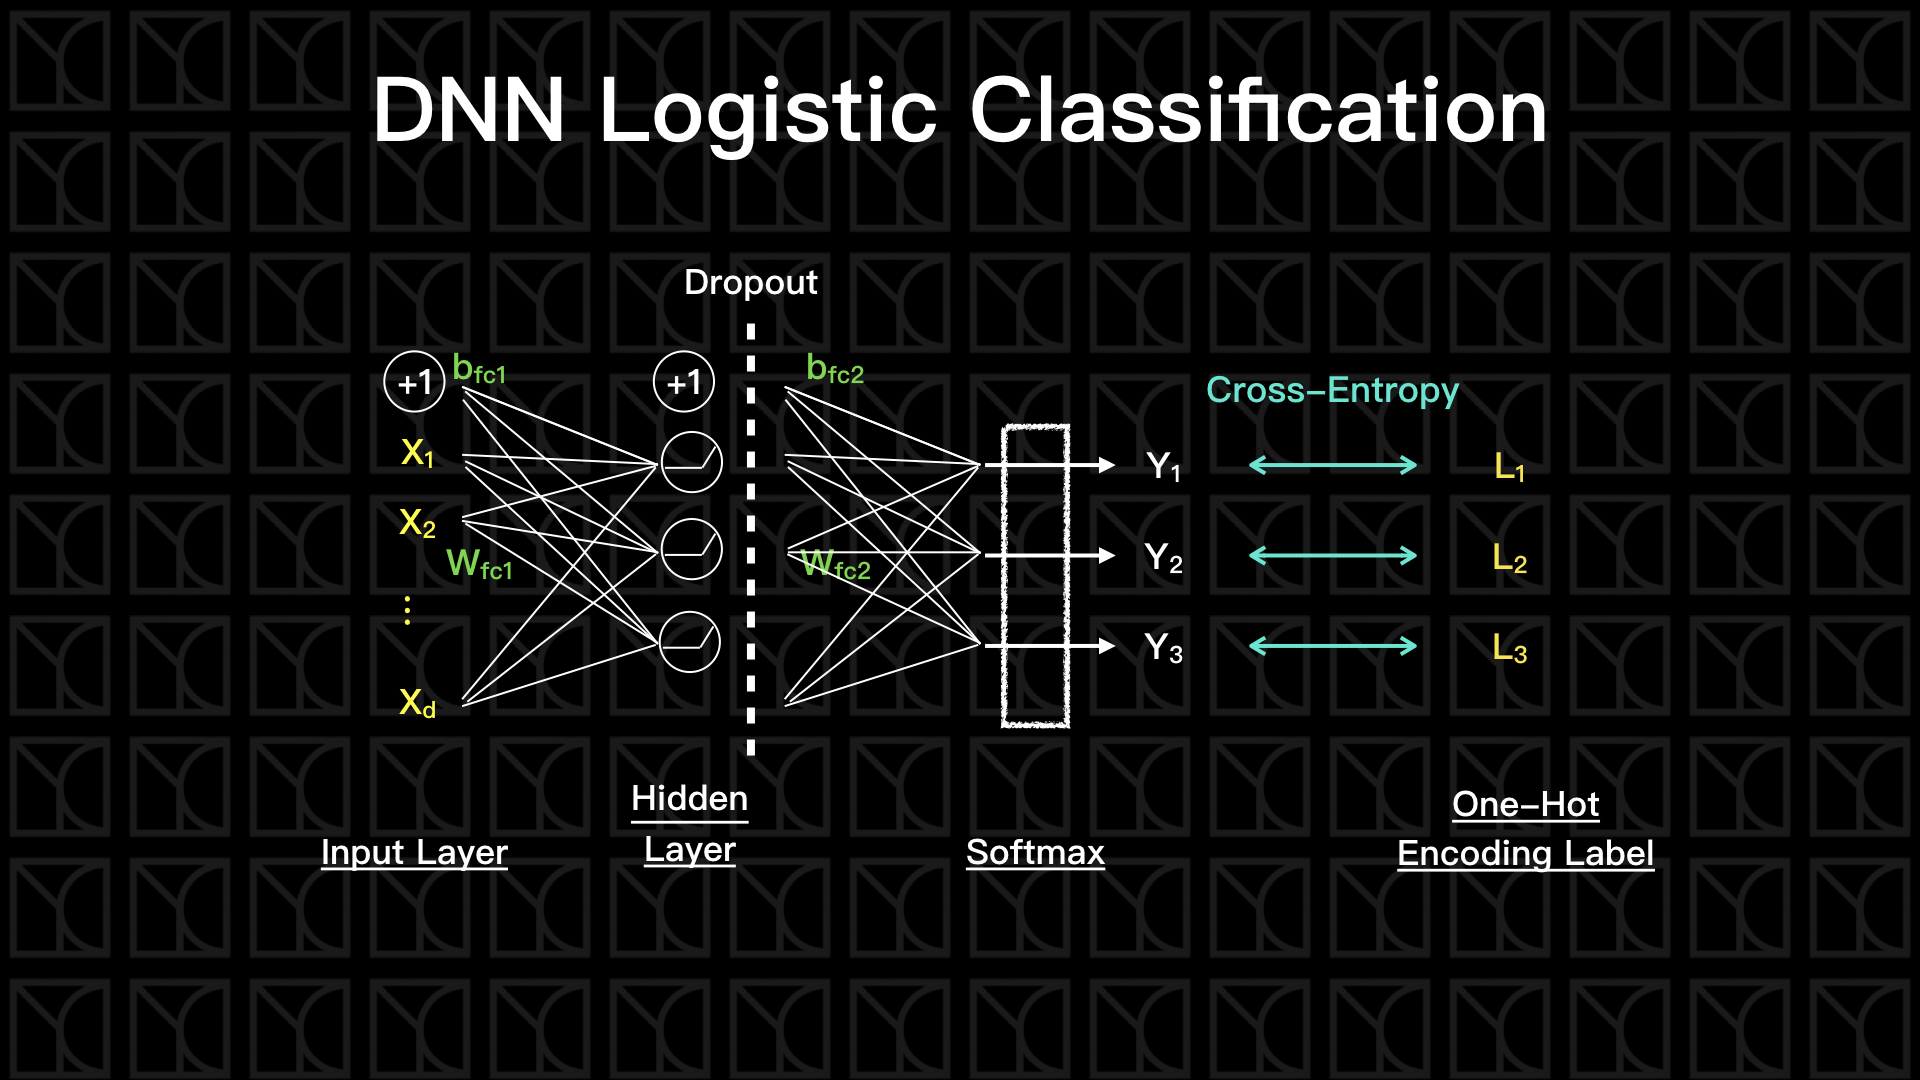 DNNLogisticClassification